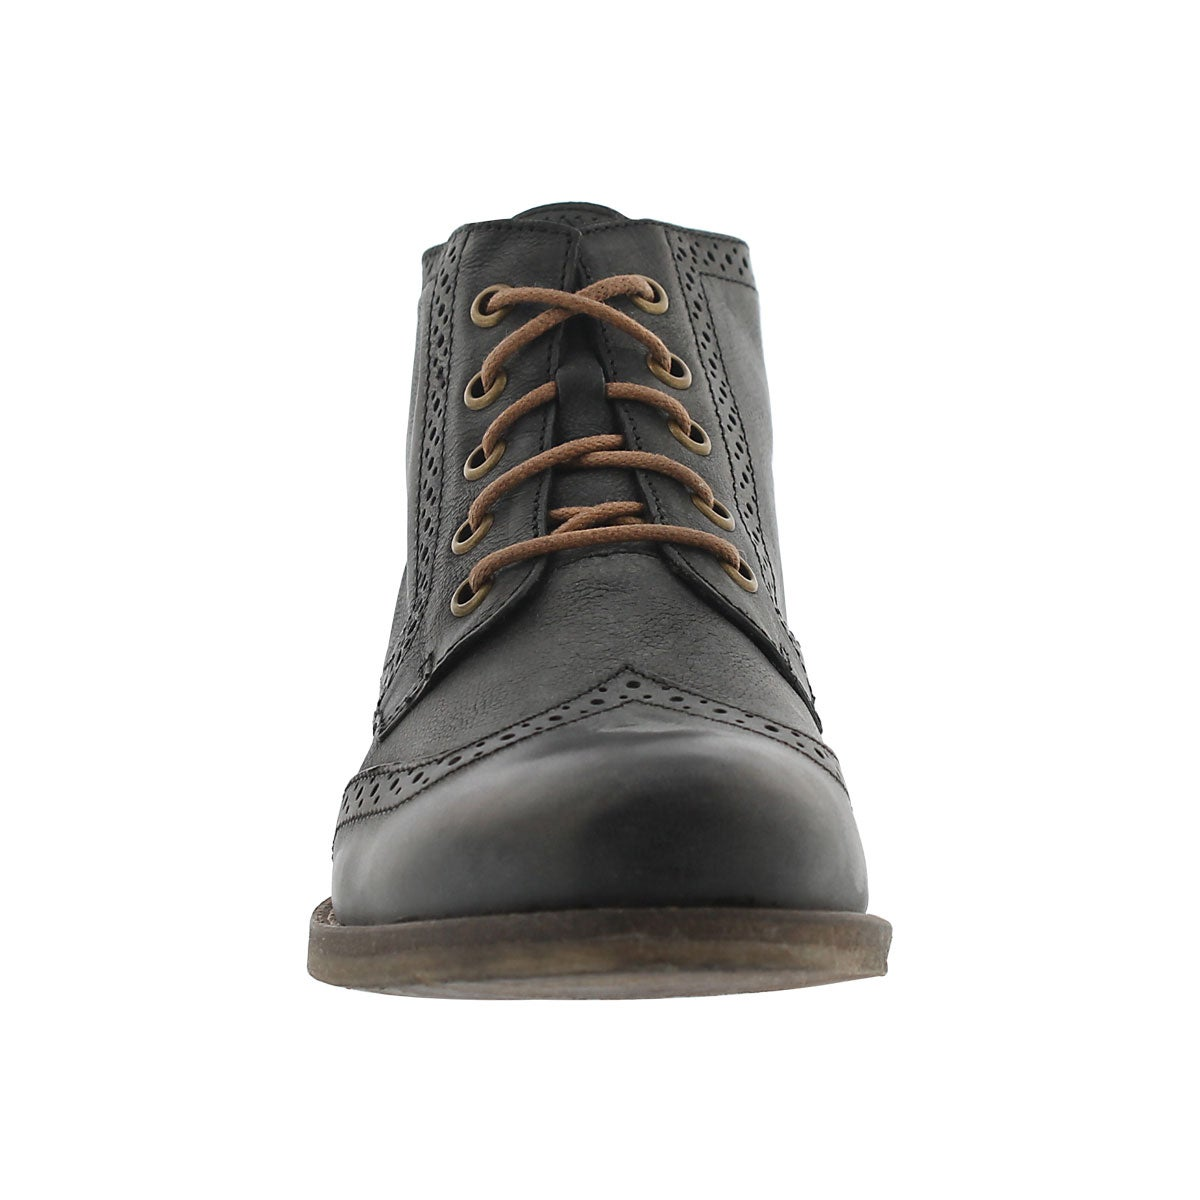 Lds Sienna 15 black ankle boot